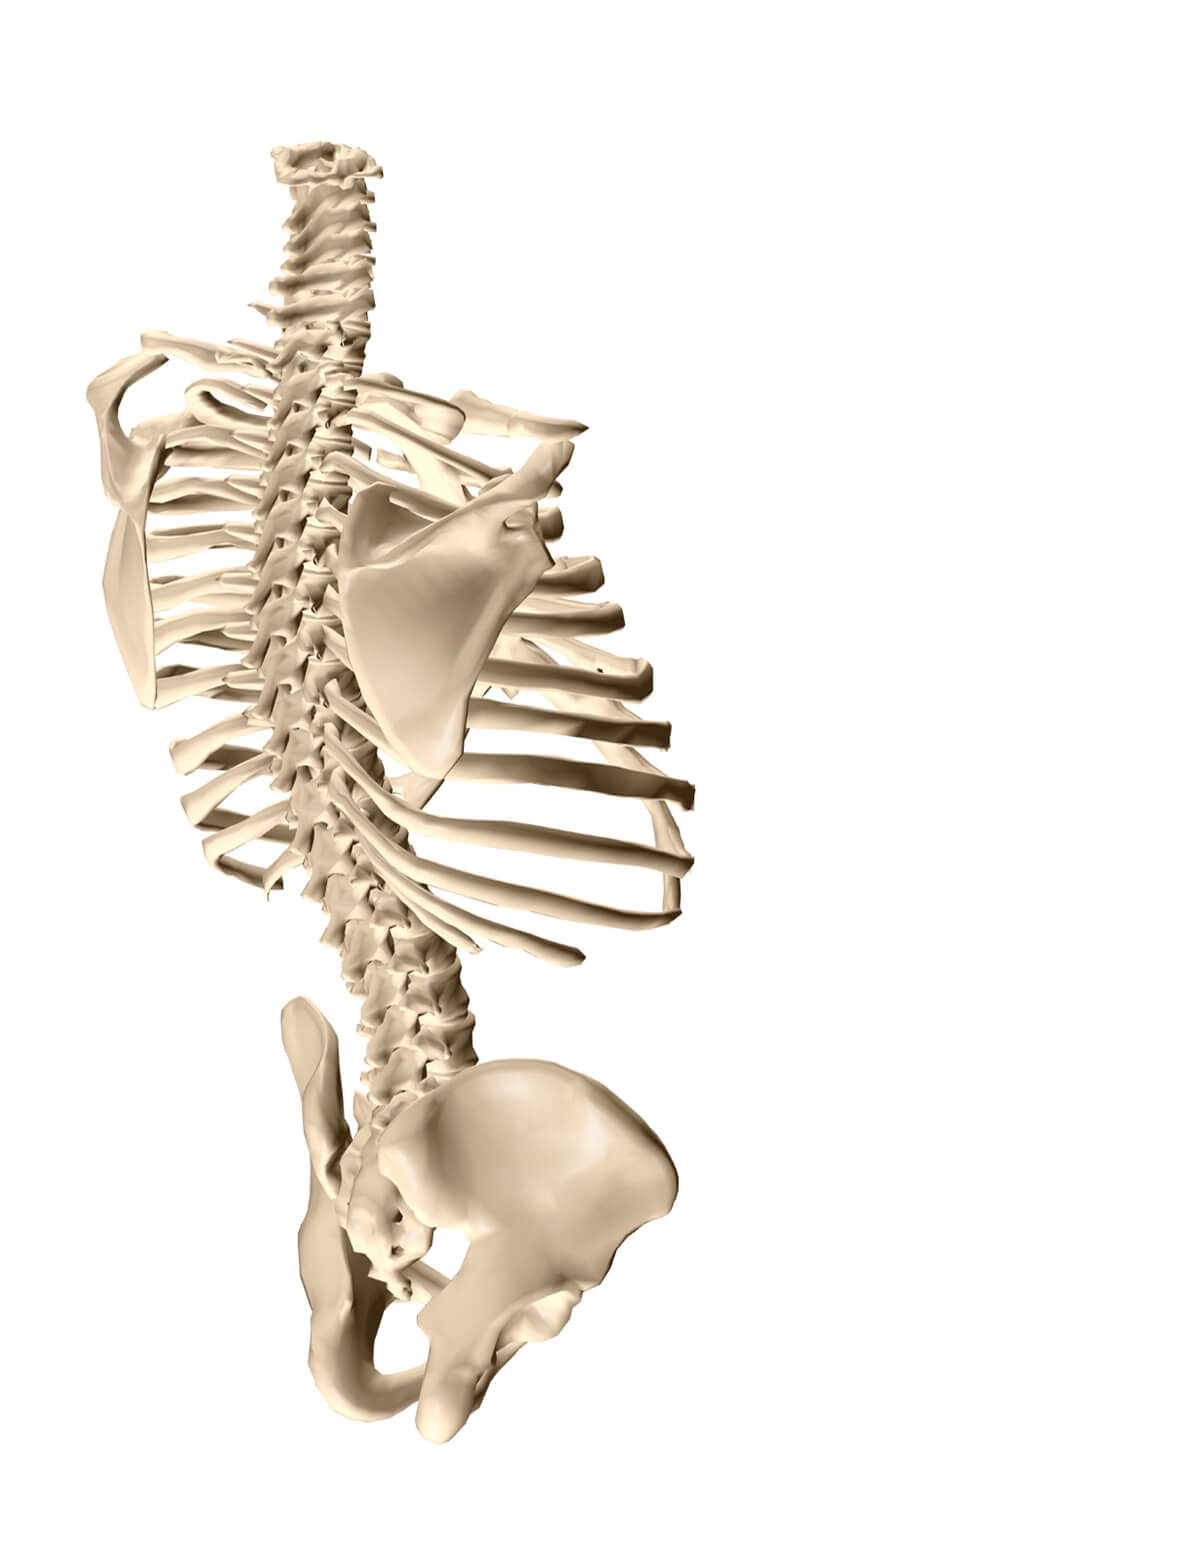 What Causes Scoliosis